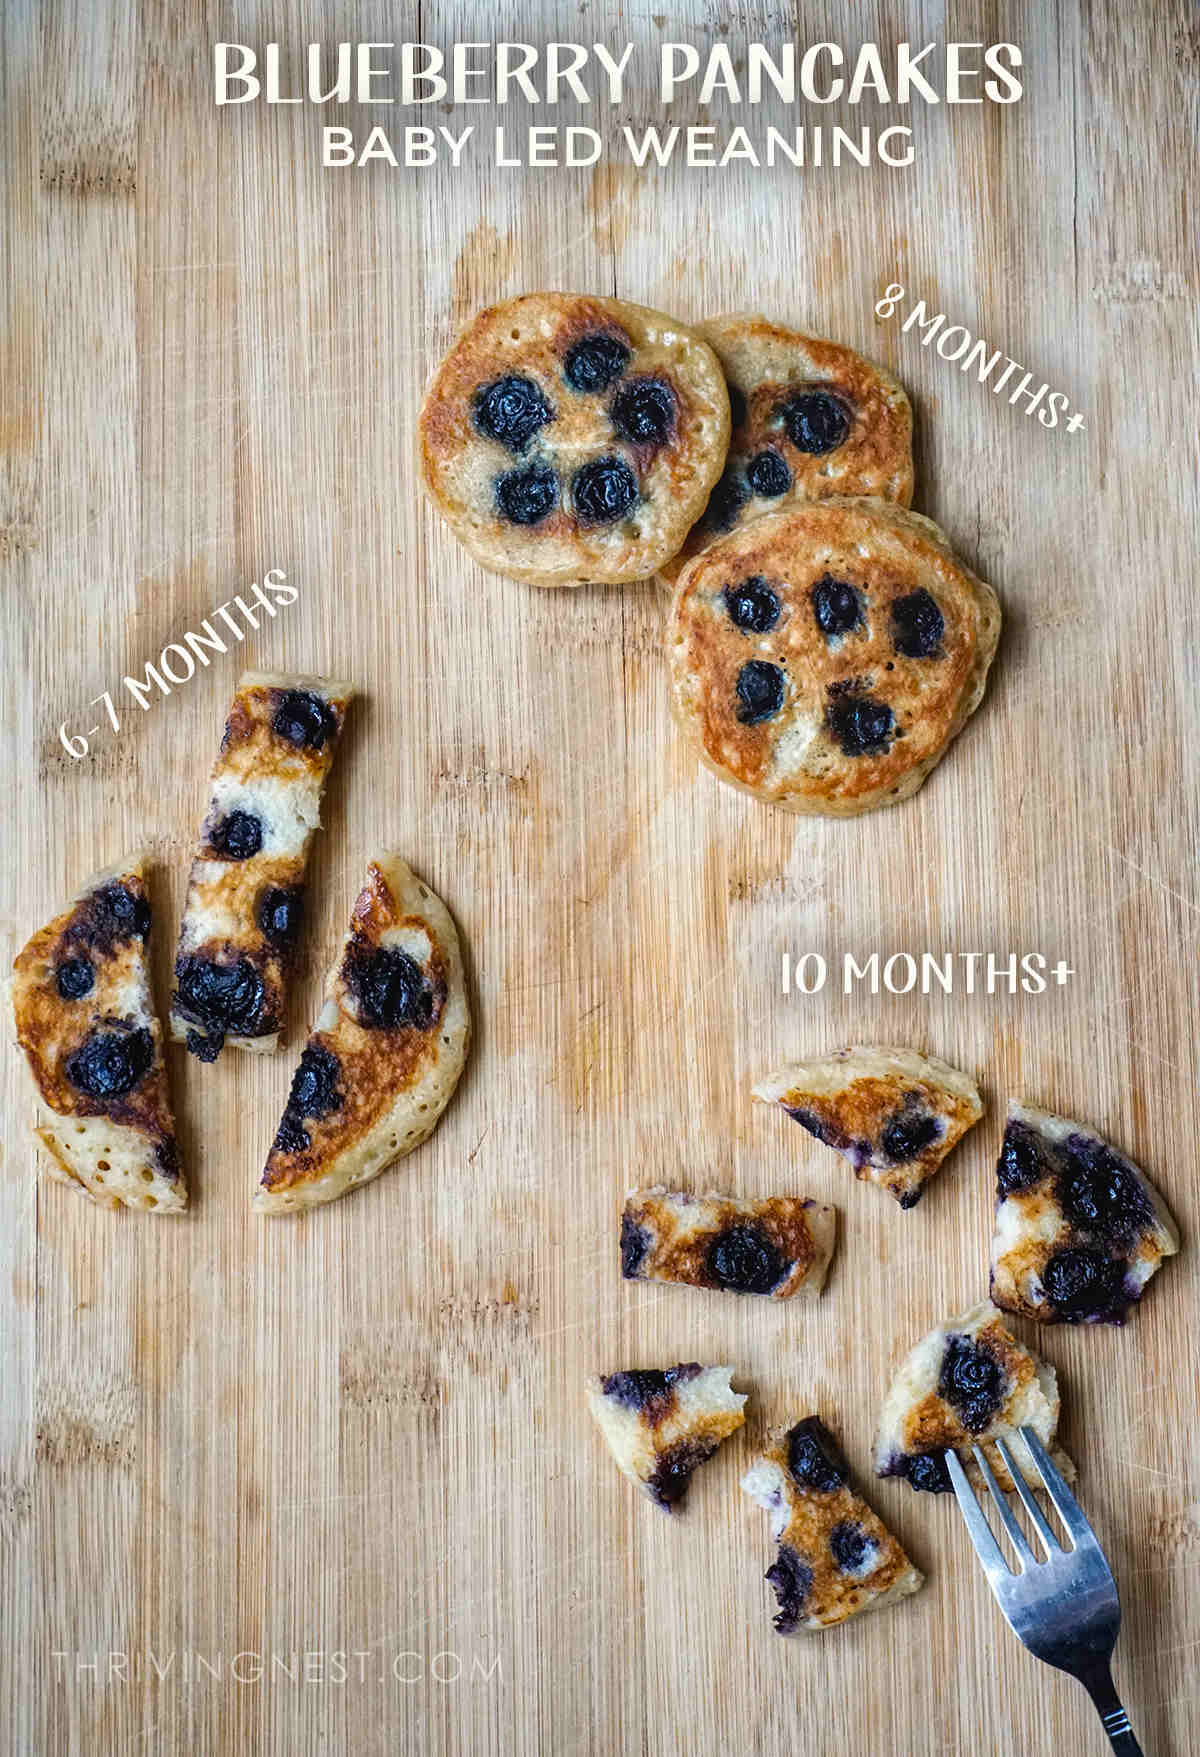 Baby led weaning with blueberry pancakes ways to cut and serve to 6 months babies and up.